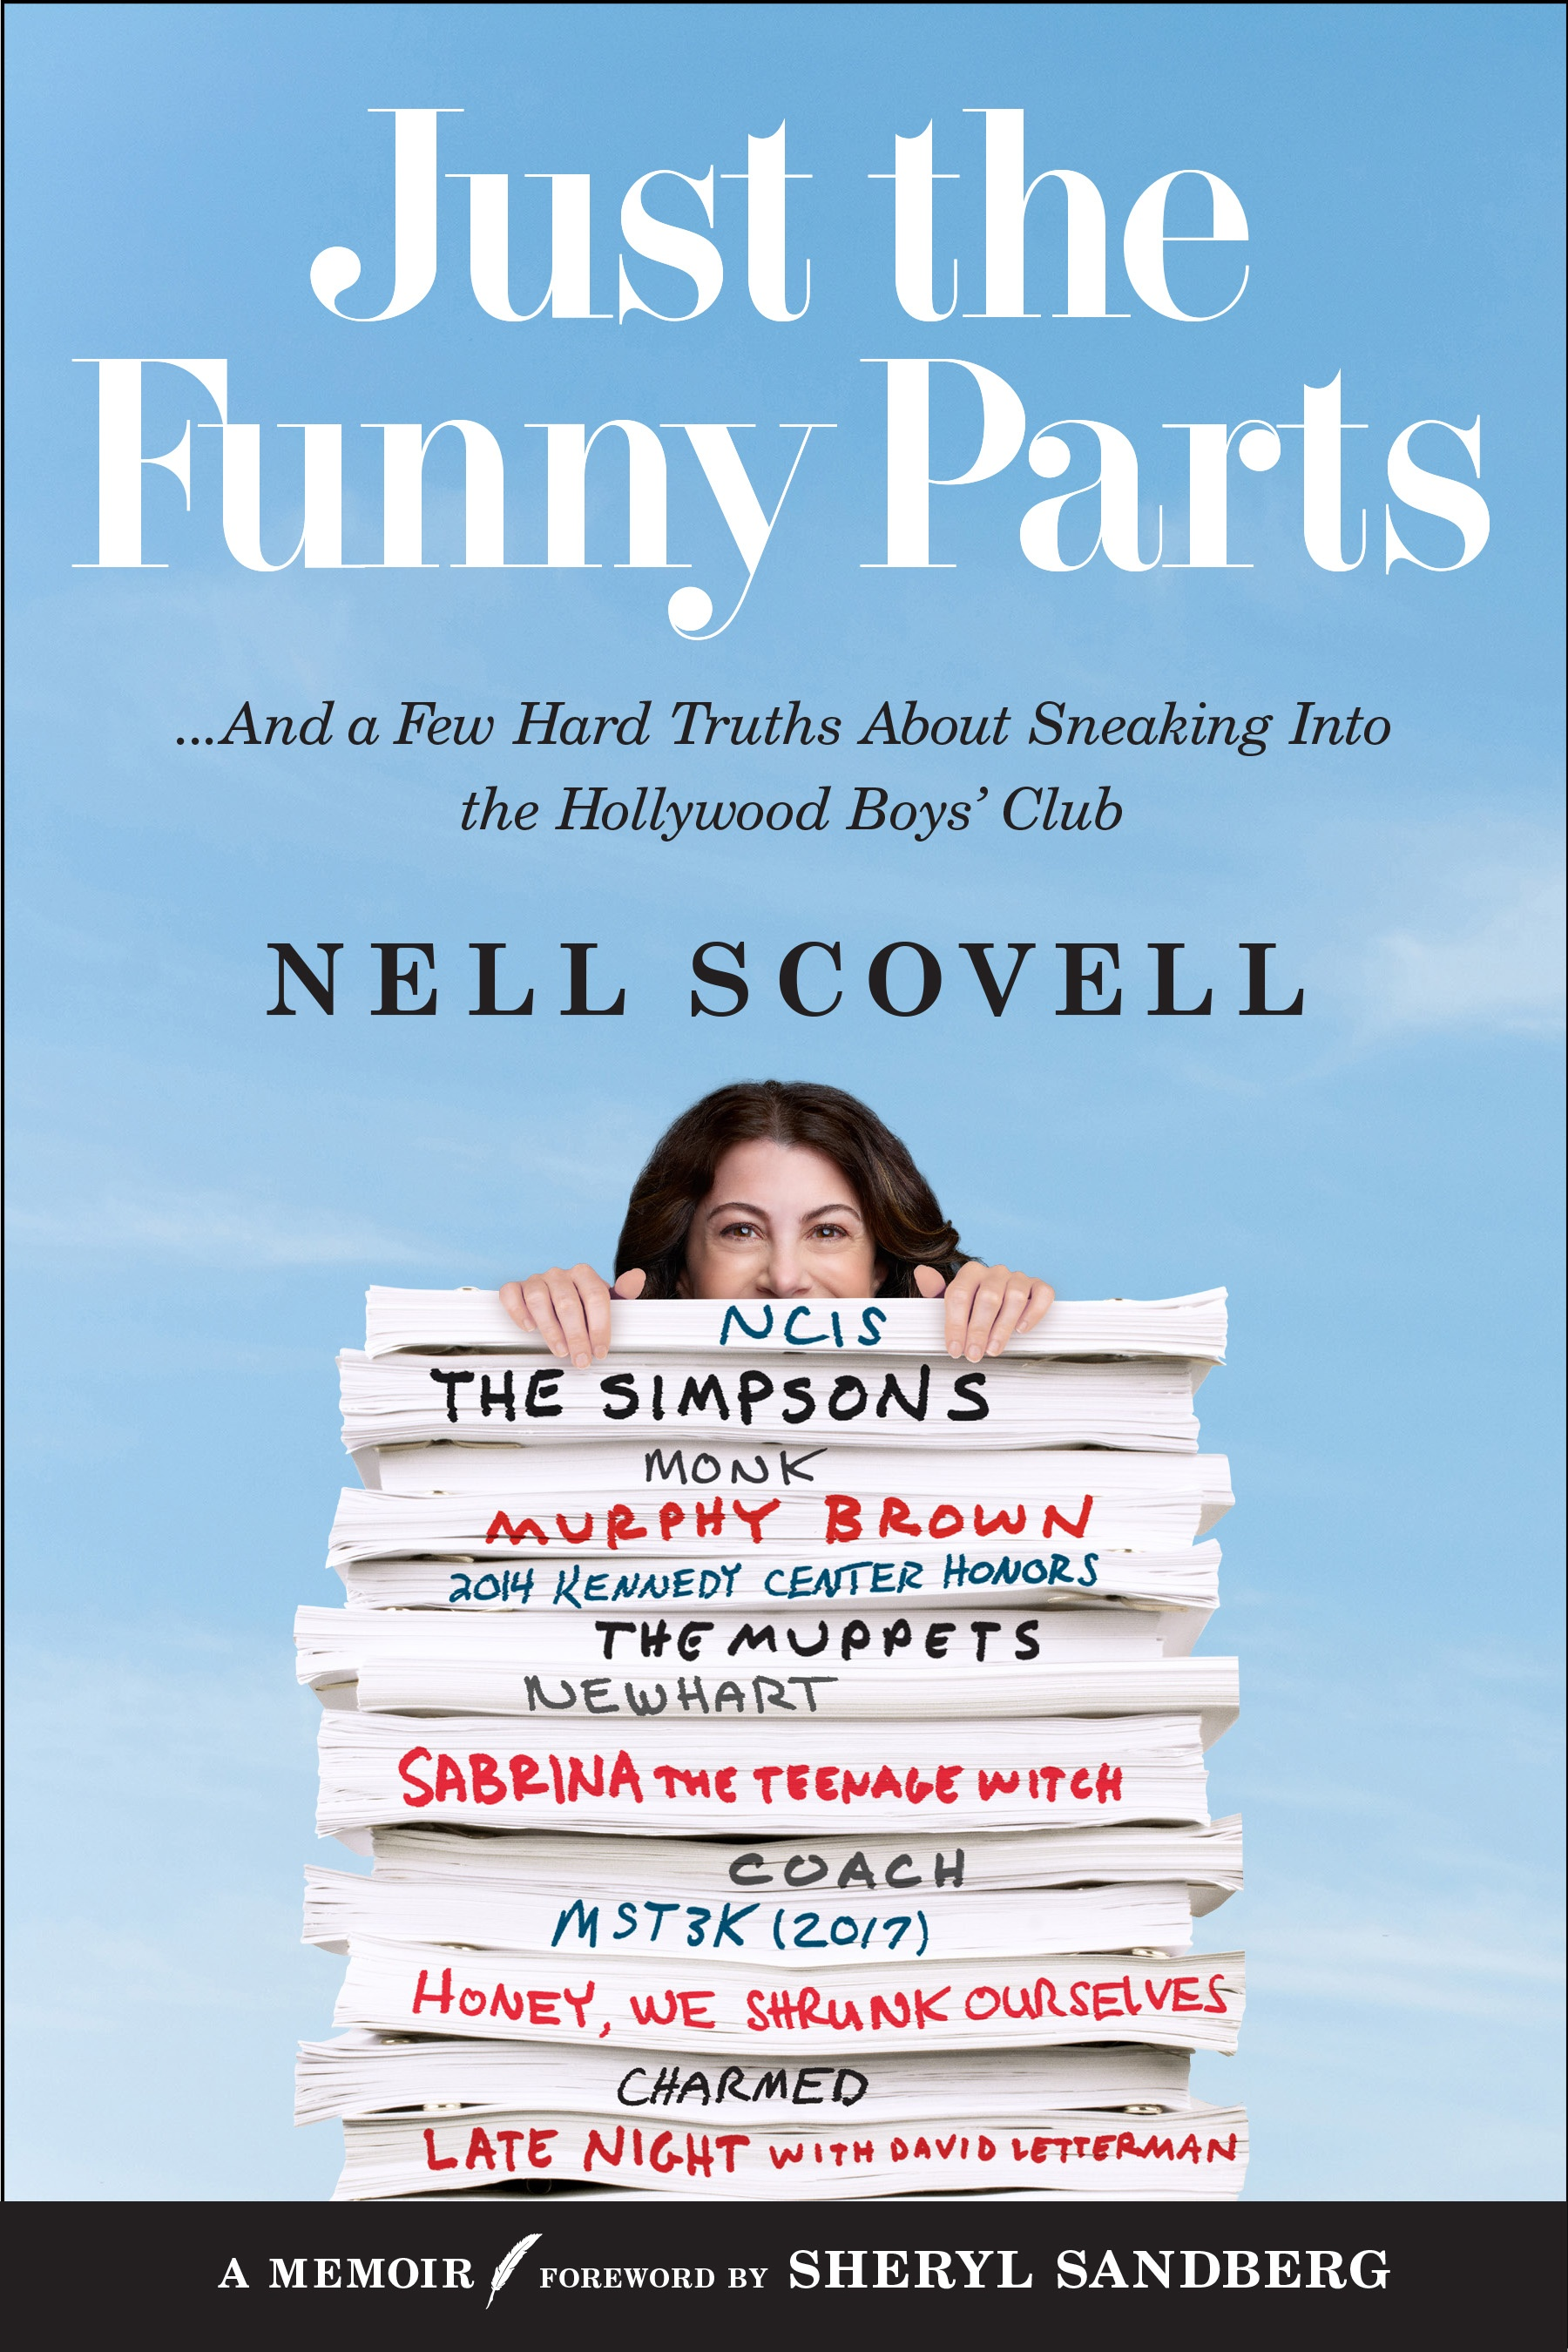 Just the Funny Parts... And a Few Hard Truths About Sneaking Into the Hollywood Boys' Club, by Nell Scovell (Image: Courtesy{ }Dey Street Books){ }